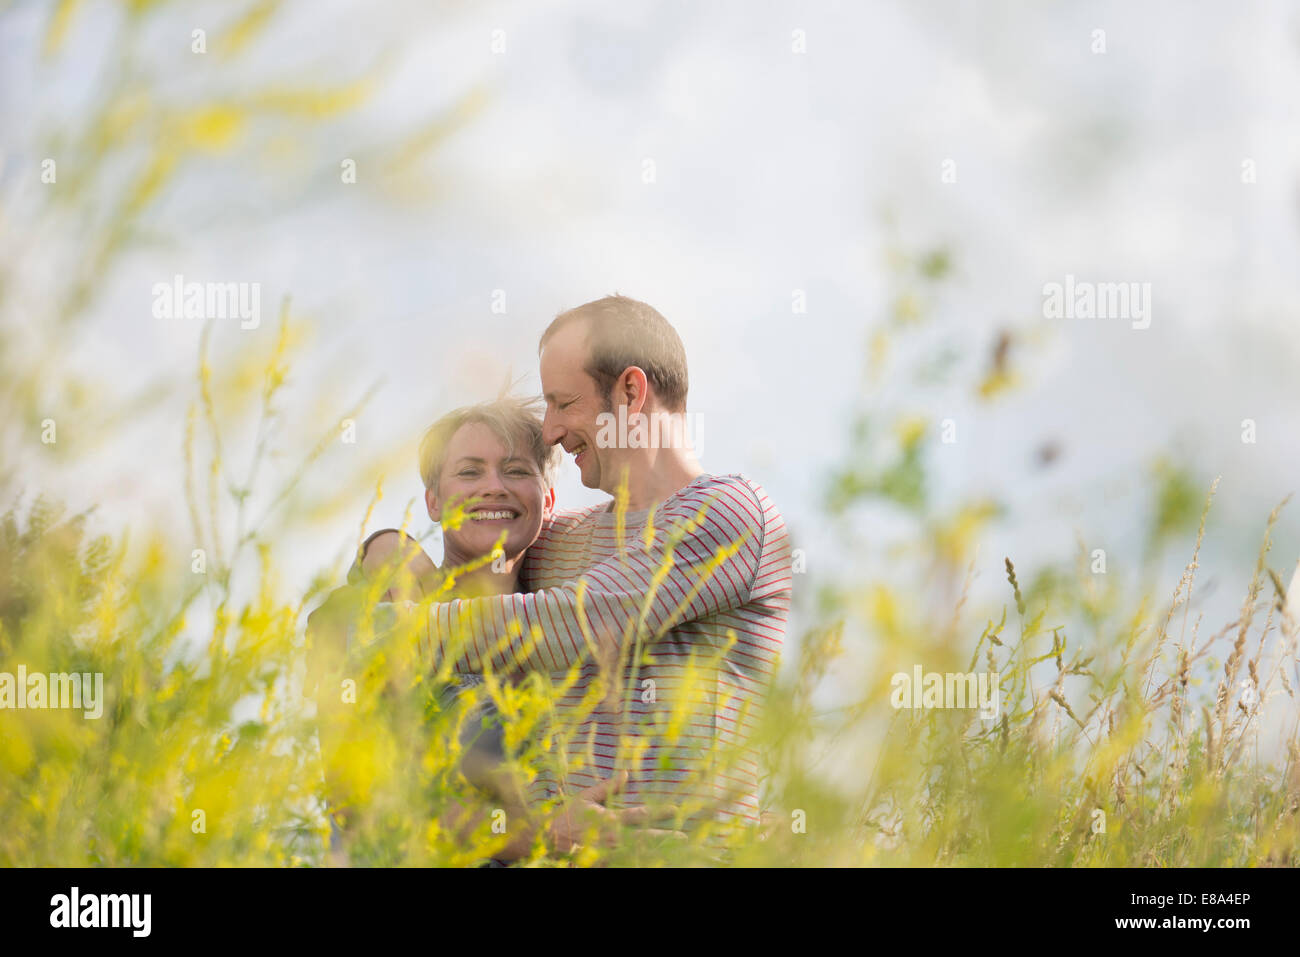 Mature couple embracing each other in field, smiling - Stock Image